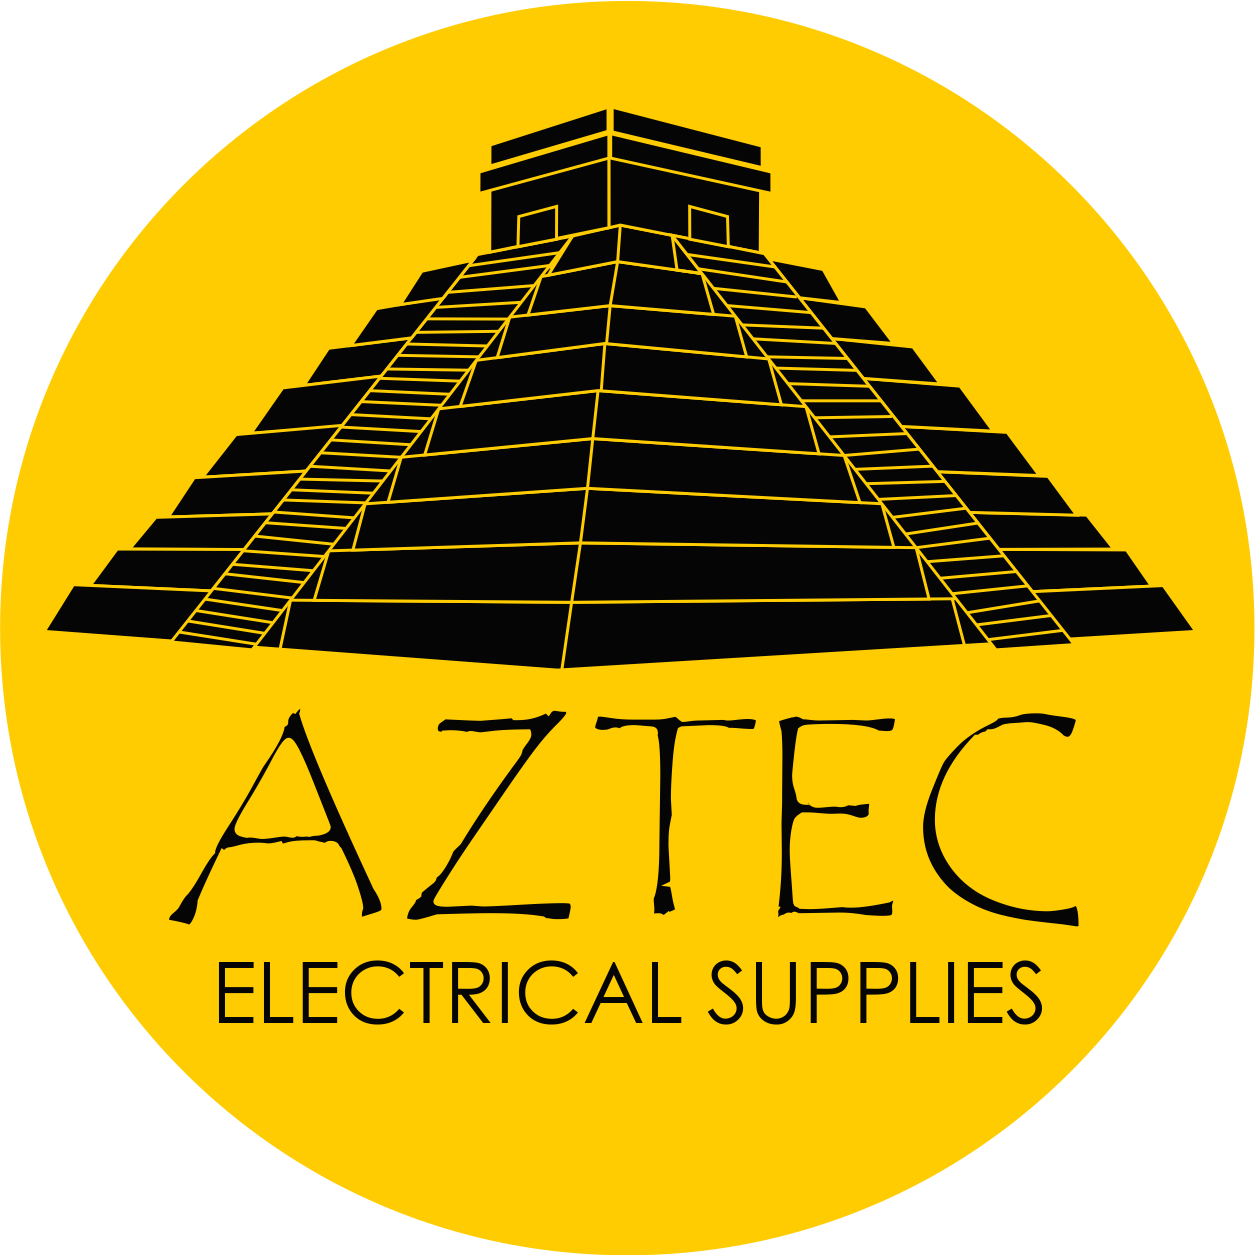 Aztec Electrical Supplies